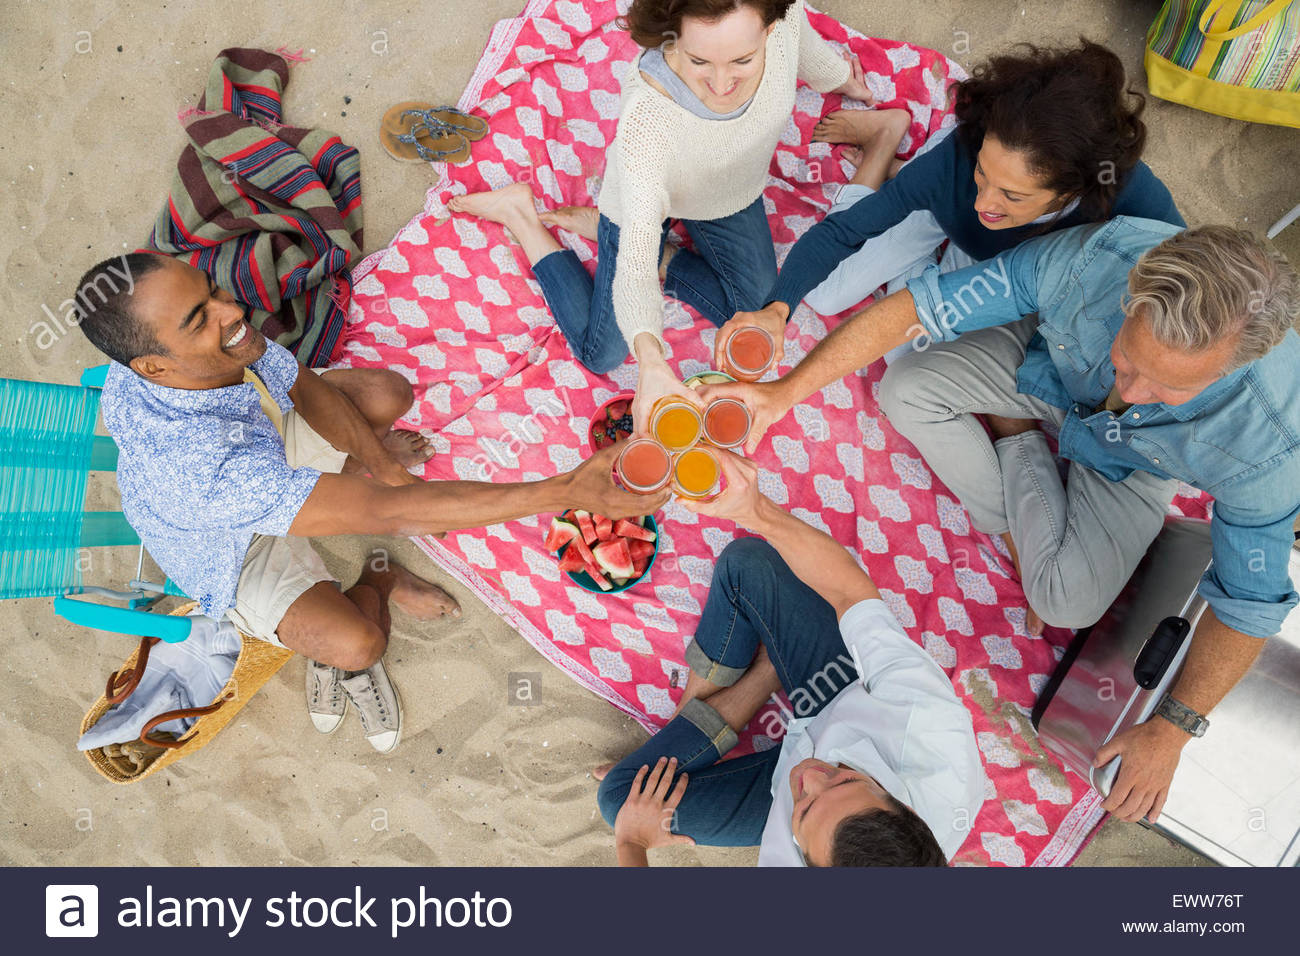 Overhead view friends toasting cocktails at beach picnic - Stock Image